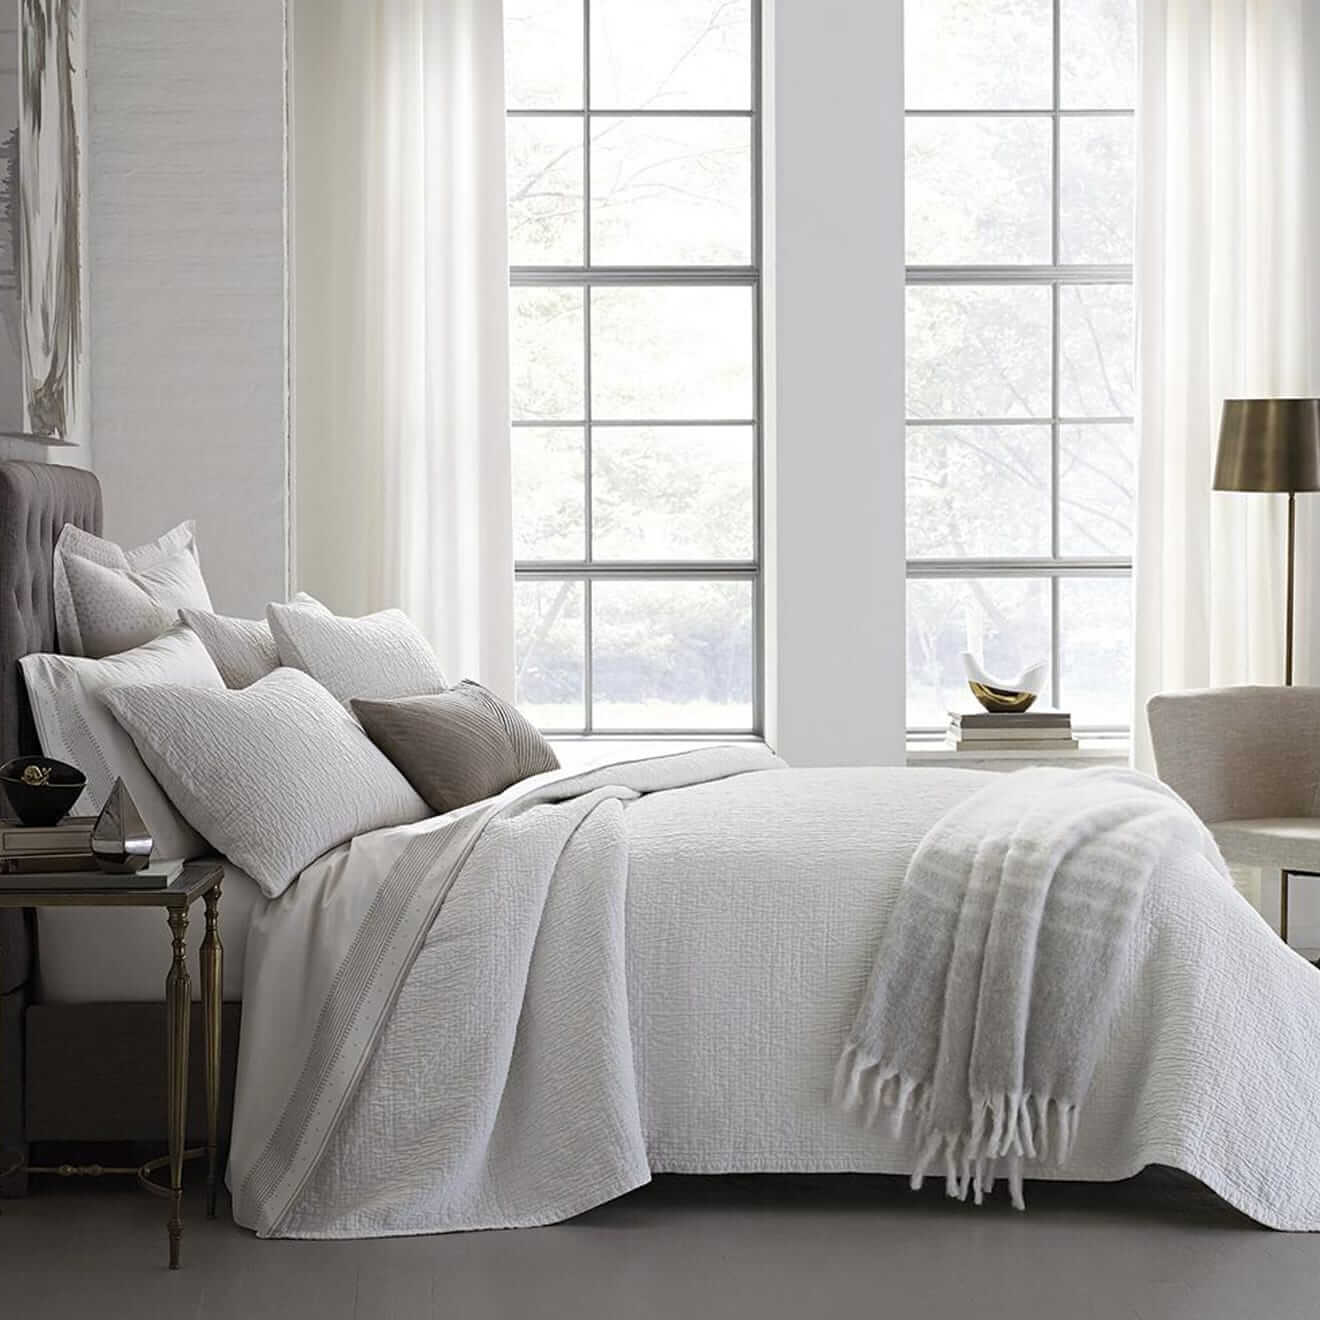 Woodgrain Matelasse Coverlet by DwellStudio